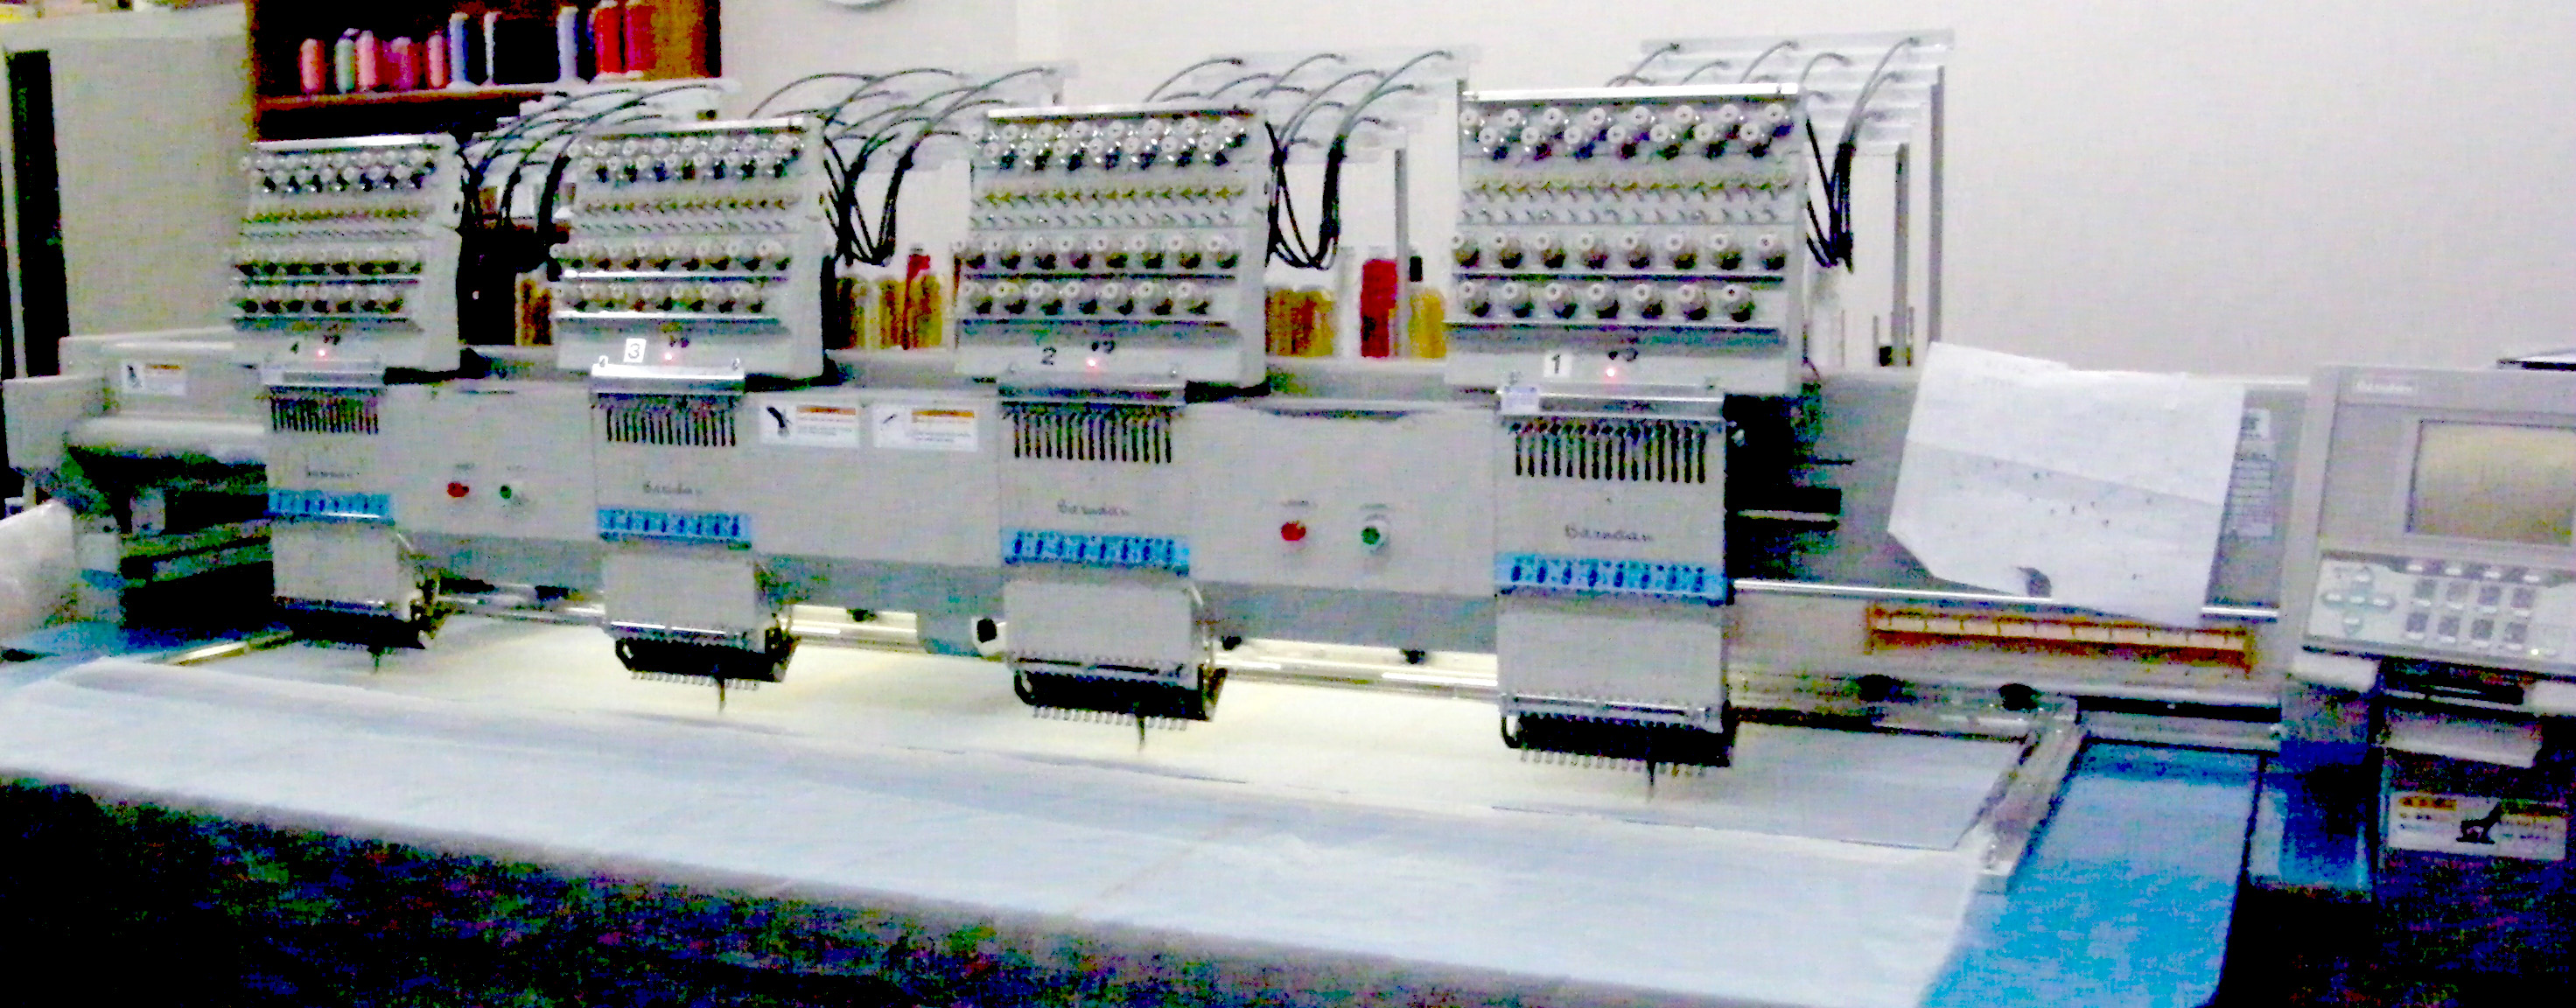 Barudan 4 Head Embroidery Machine for sale: BENYHE-ZQ-CO4U Year 2001